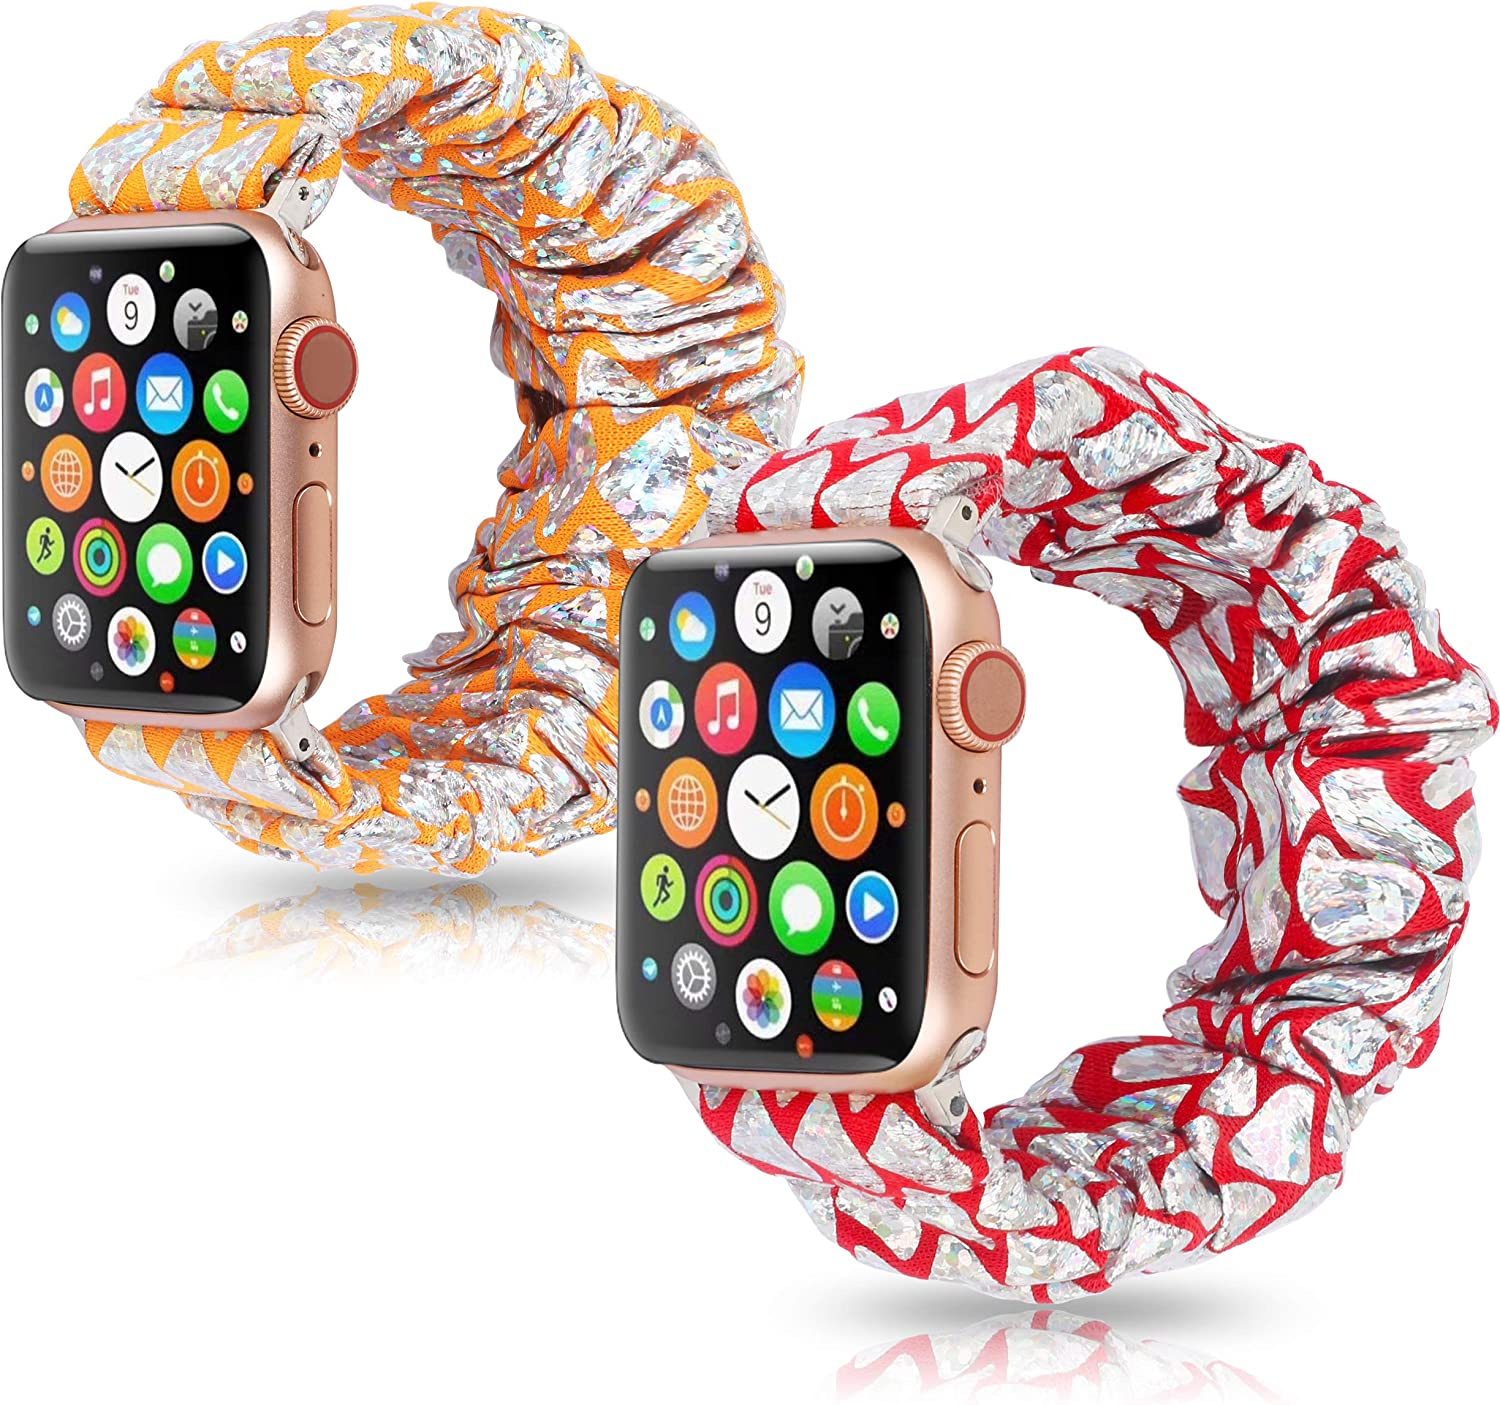 Dresible Compatible with Apple Watch bands scrunchies 38mm 40mm,Comfortable Cute Elastic Scrunchy Bands Hair Wristbands Replacement for iWatch Series 6/5/4/3/2/1, SE Orange/Red 38/40 2Packs